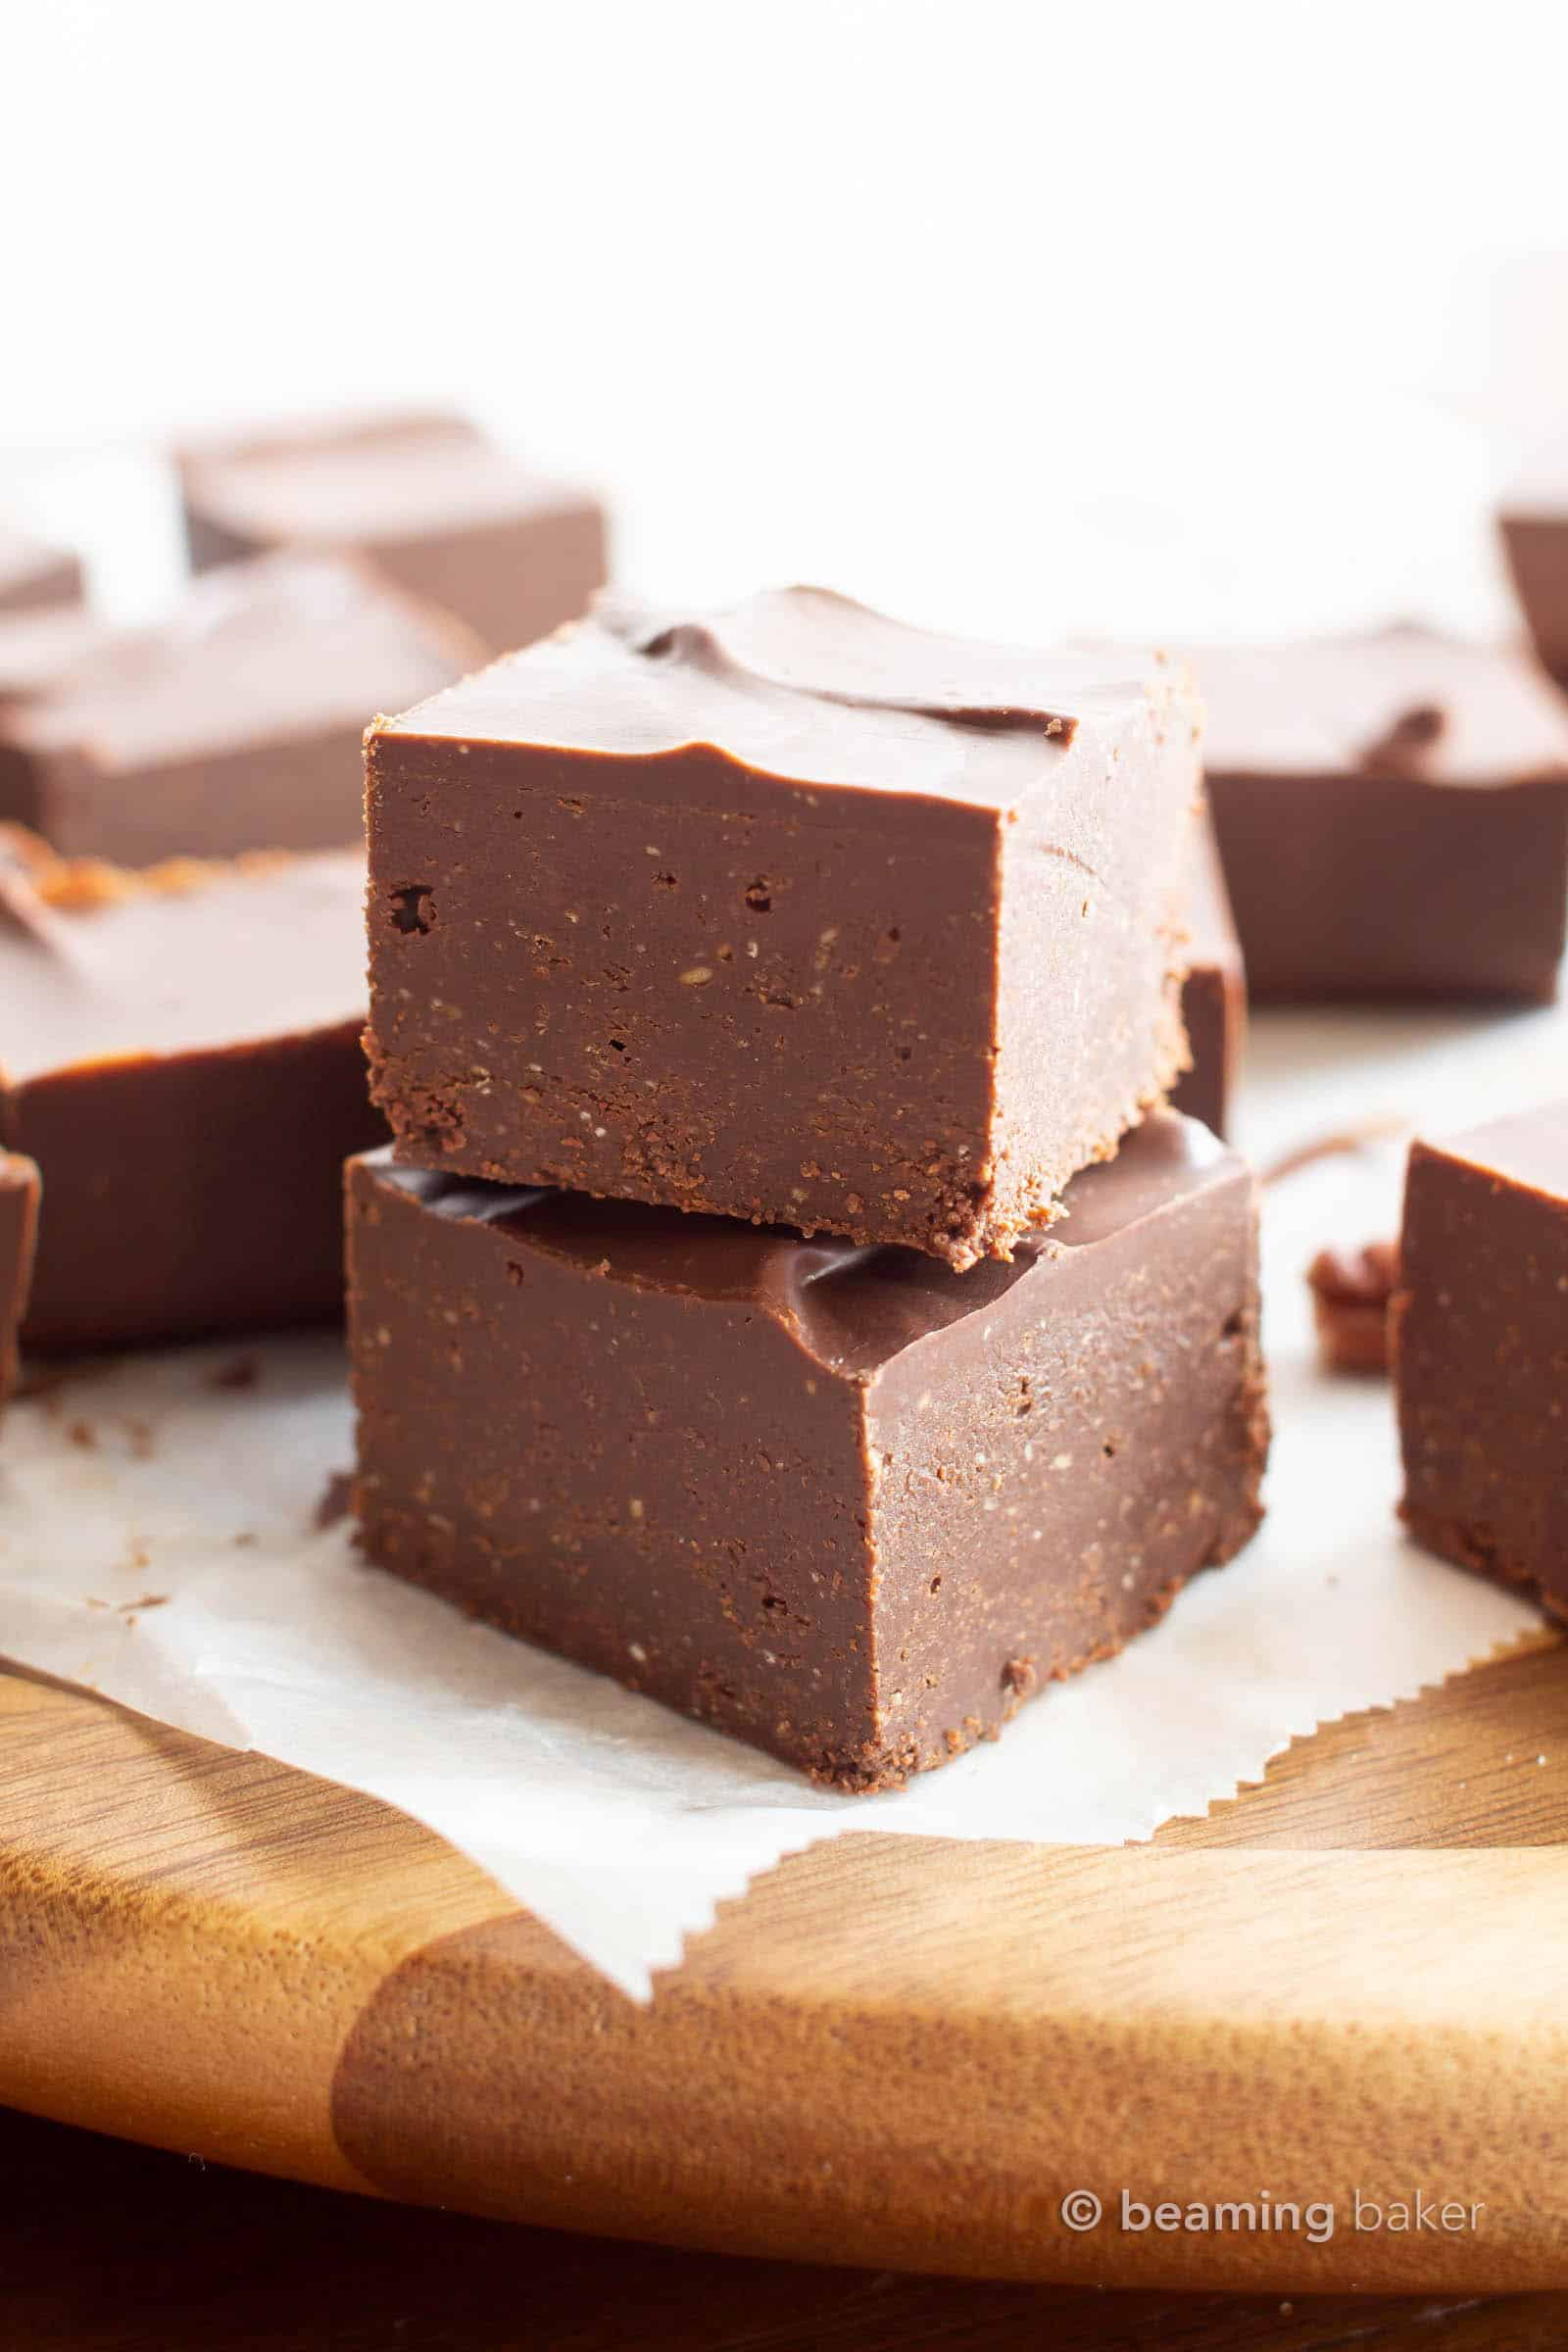 Keto Fudge: this easy keto fudge recipe calls for just 2 simple ingredients and only 5 mins of prep. Creamy, chocolate-y fudge that's low carb! #Keto #Fudge #LowCarb #Ketogenic | Recipe at BeamingBaker.com